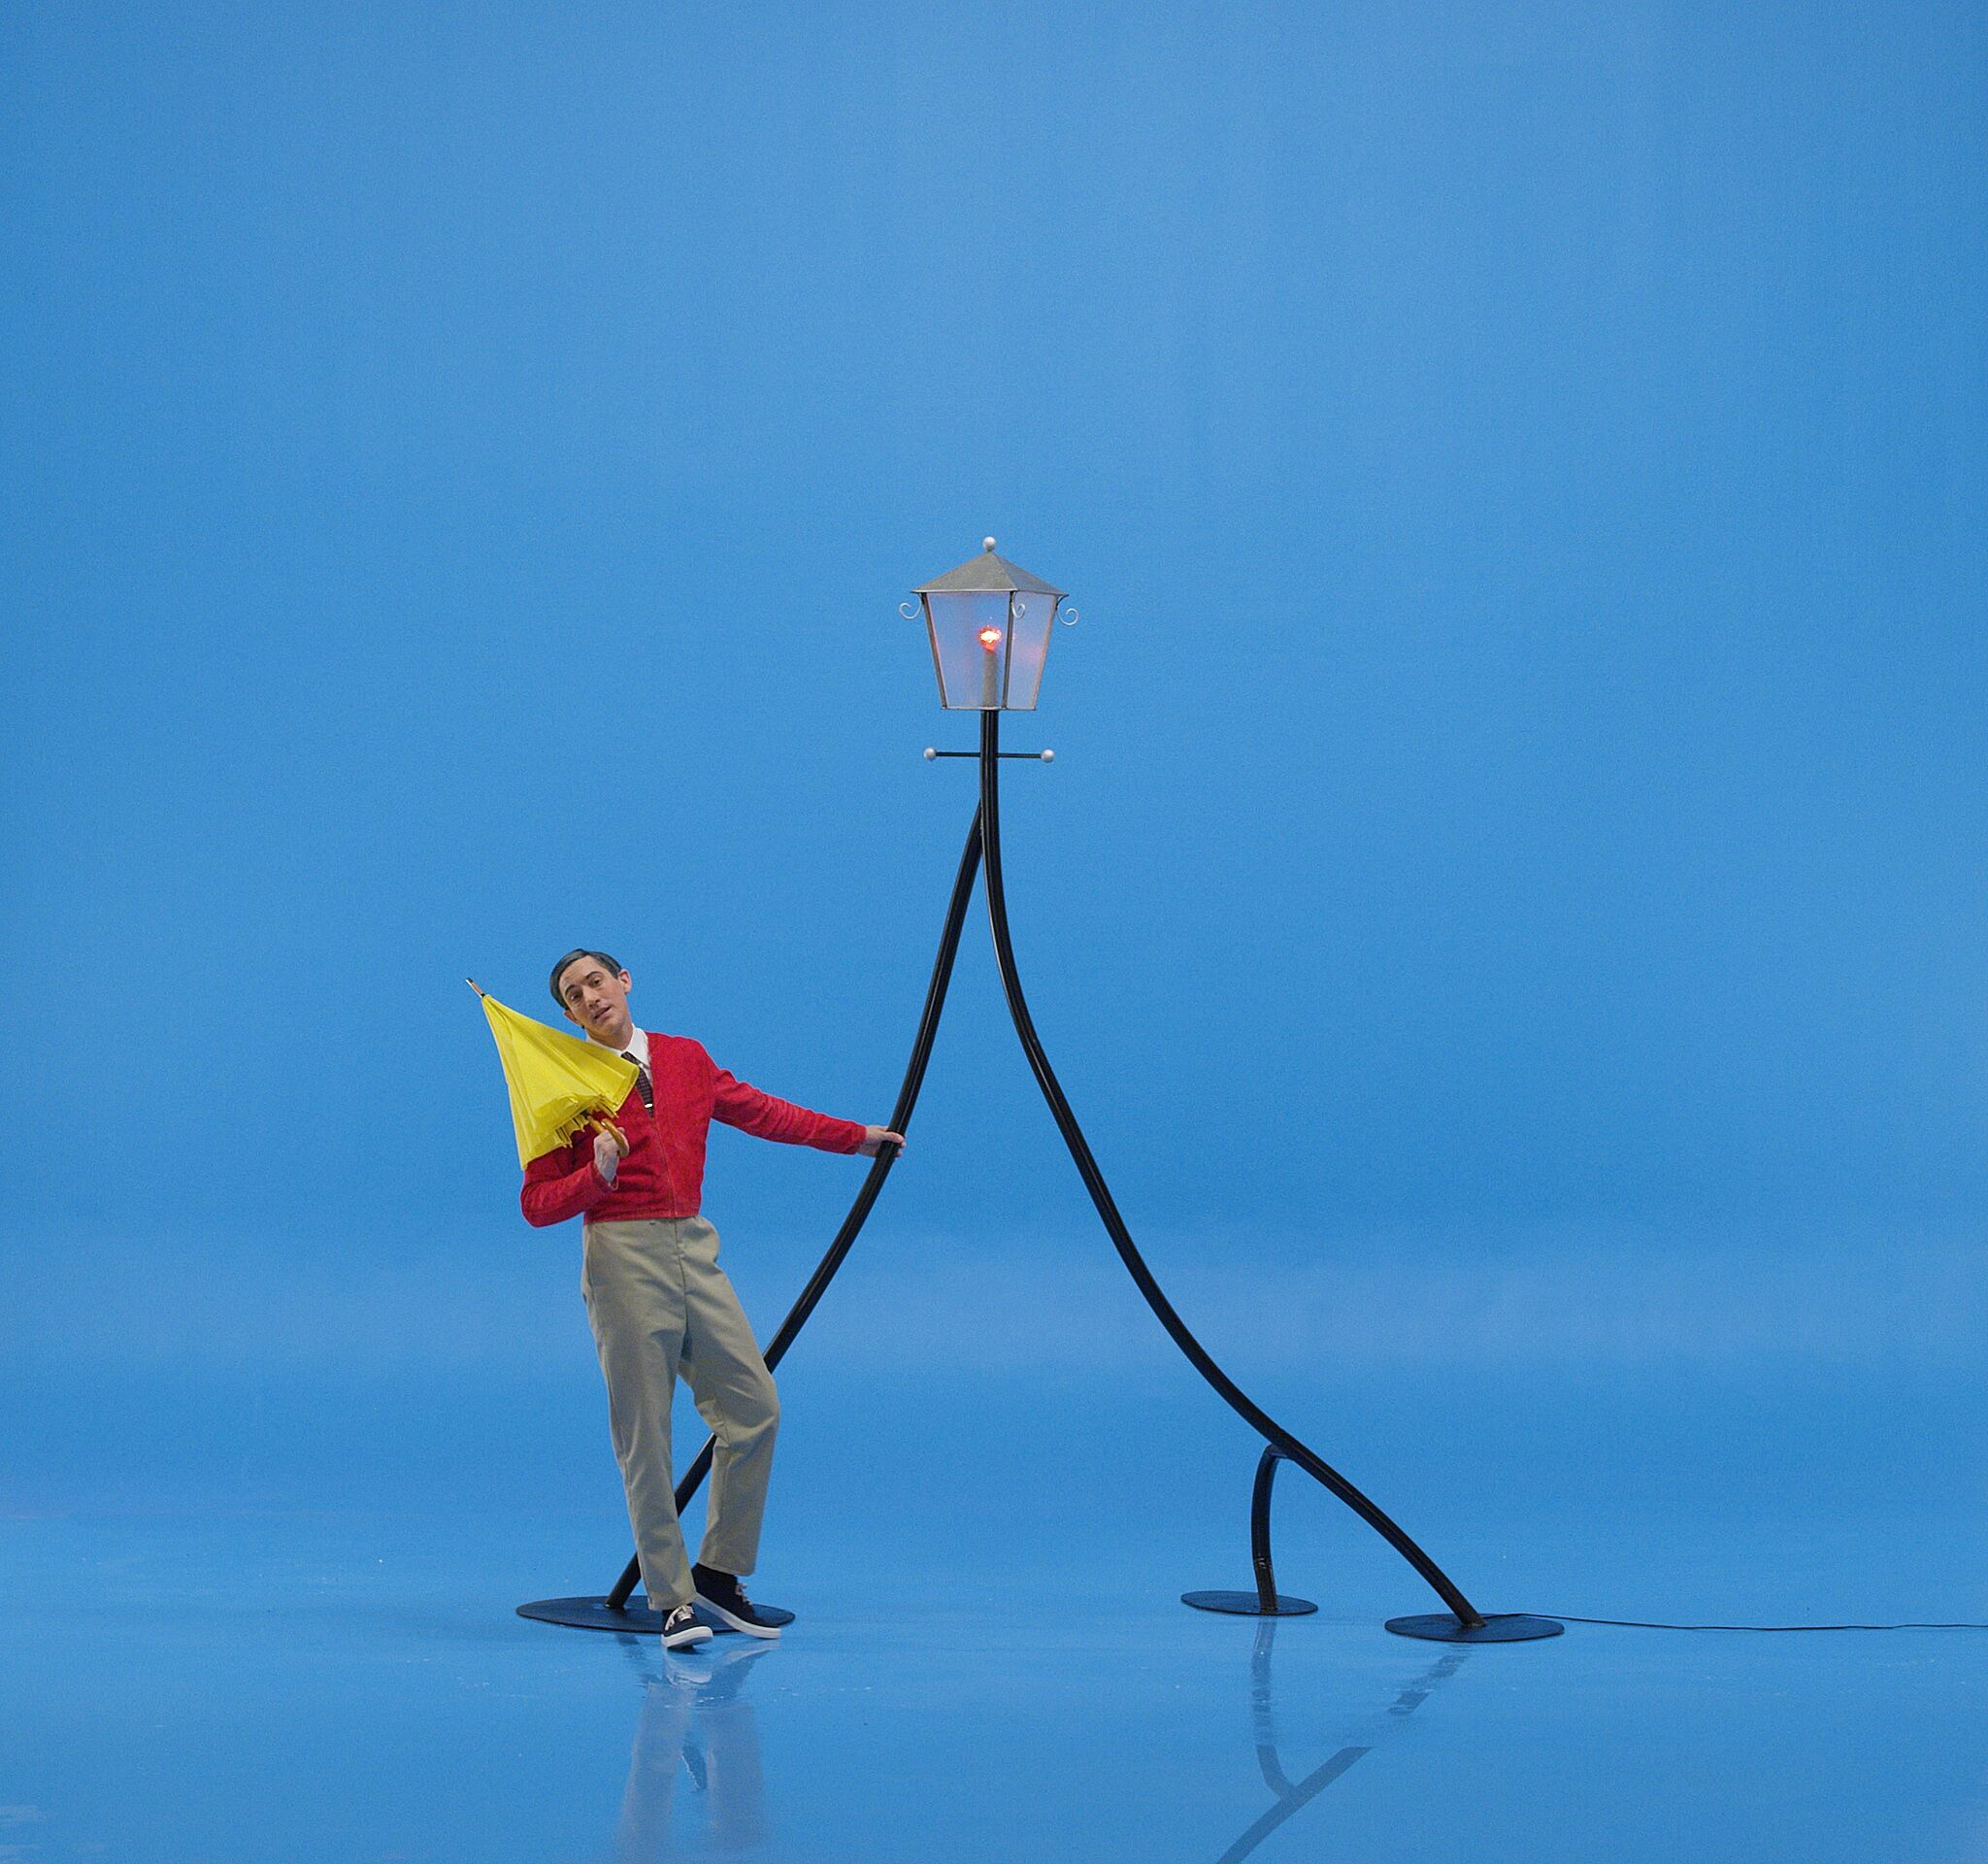 A man dressed like Mr. Rogers hangs off of a streetlamp against a bright blue background.